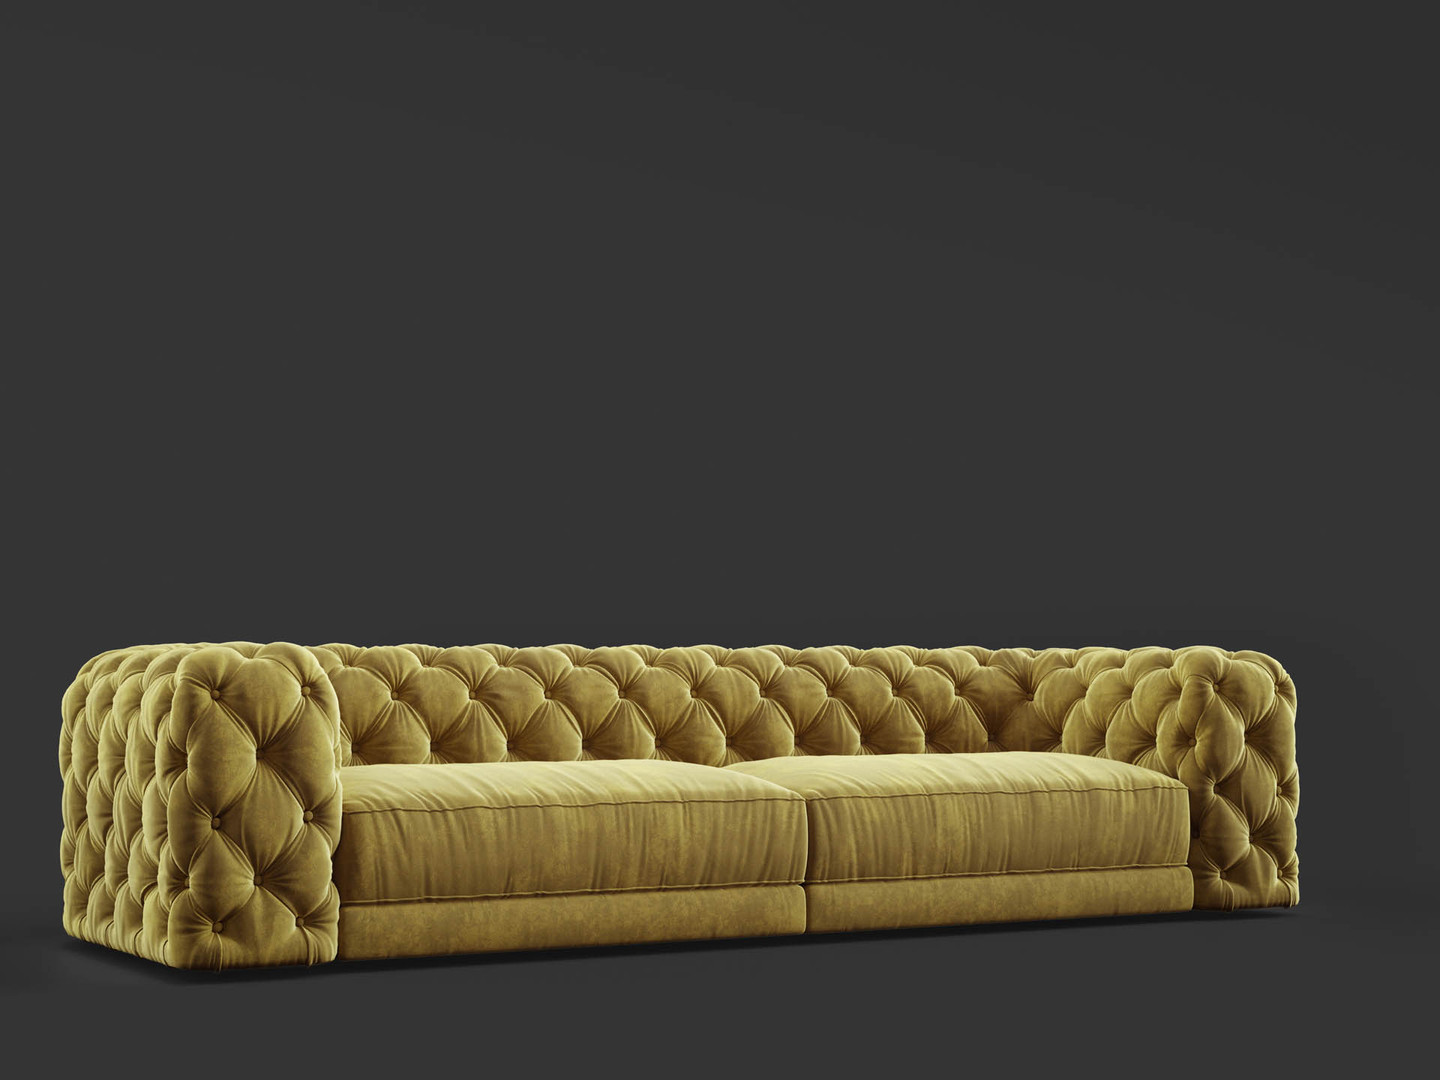 Tufted Sofa 3 MediaLab ProductViz.jpg